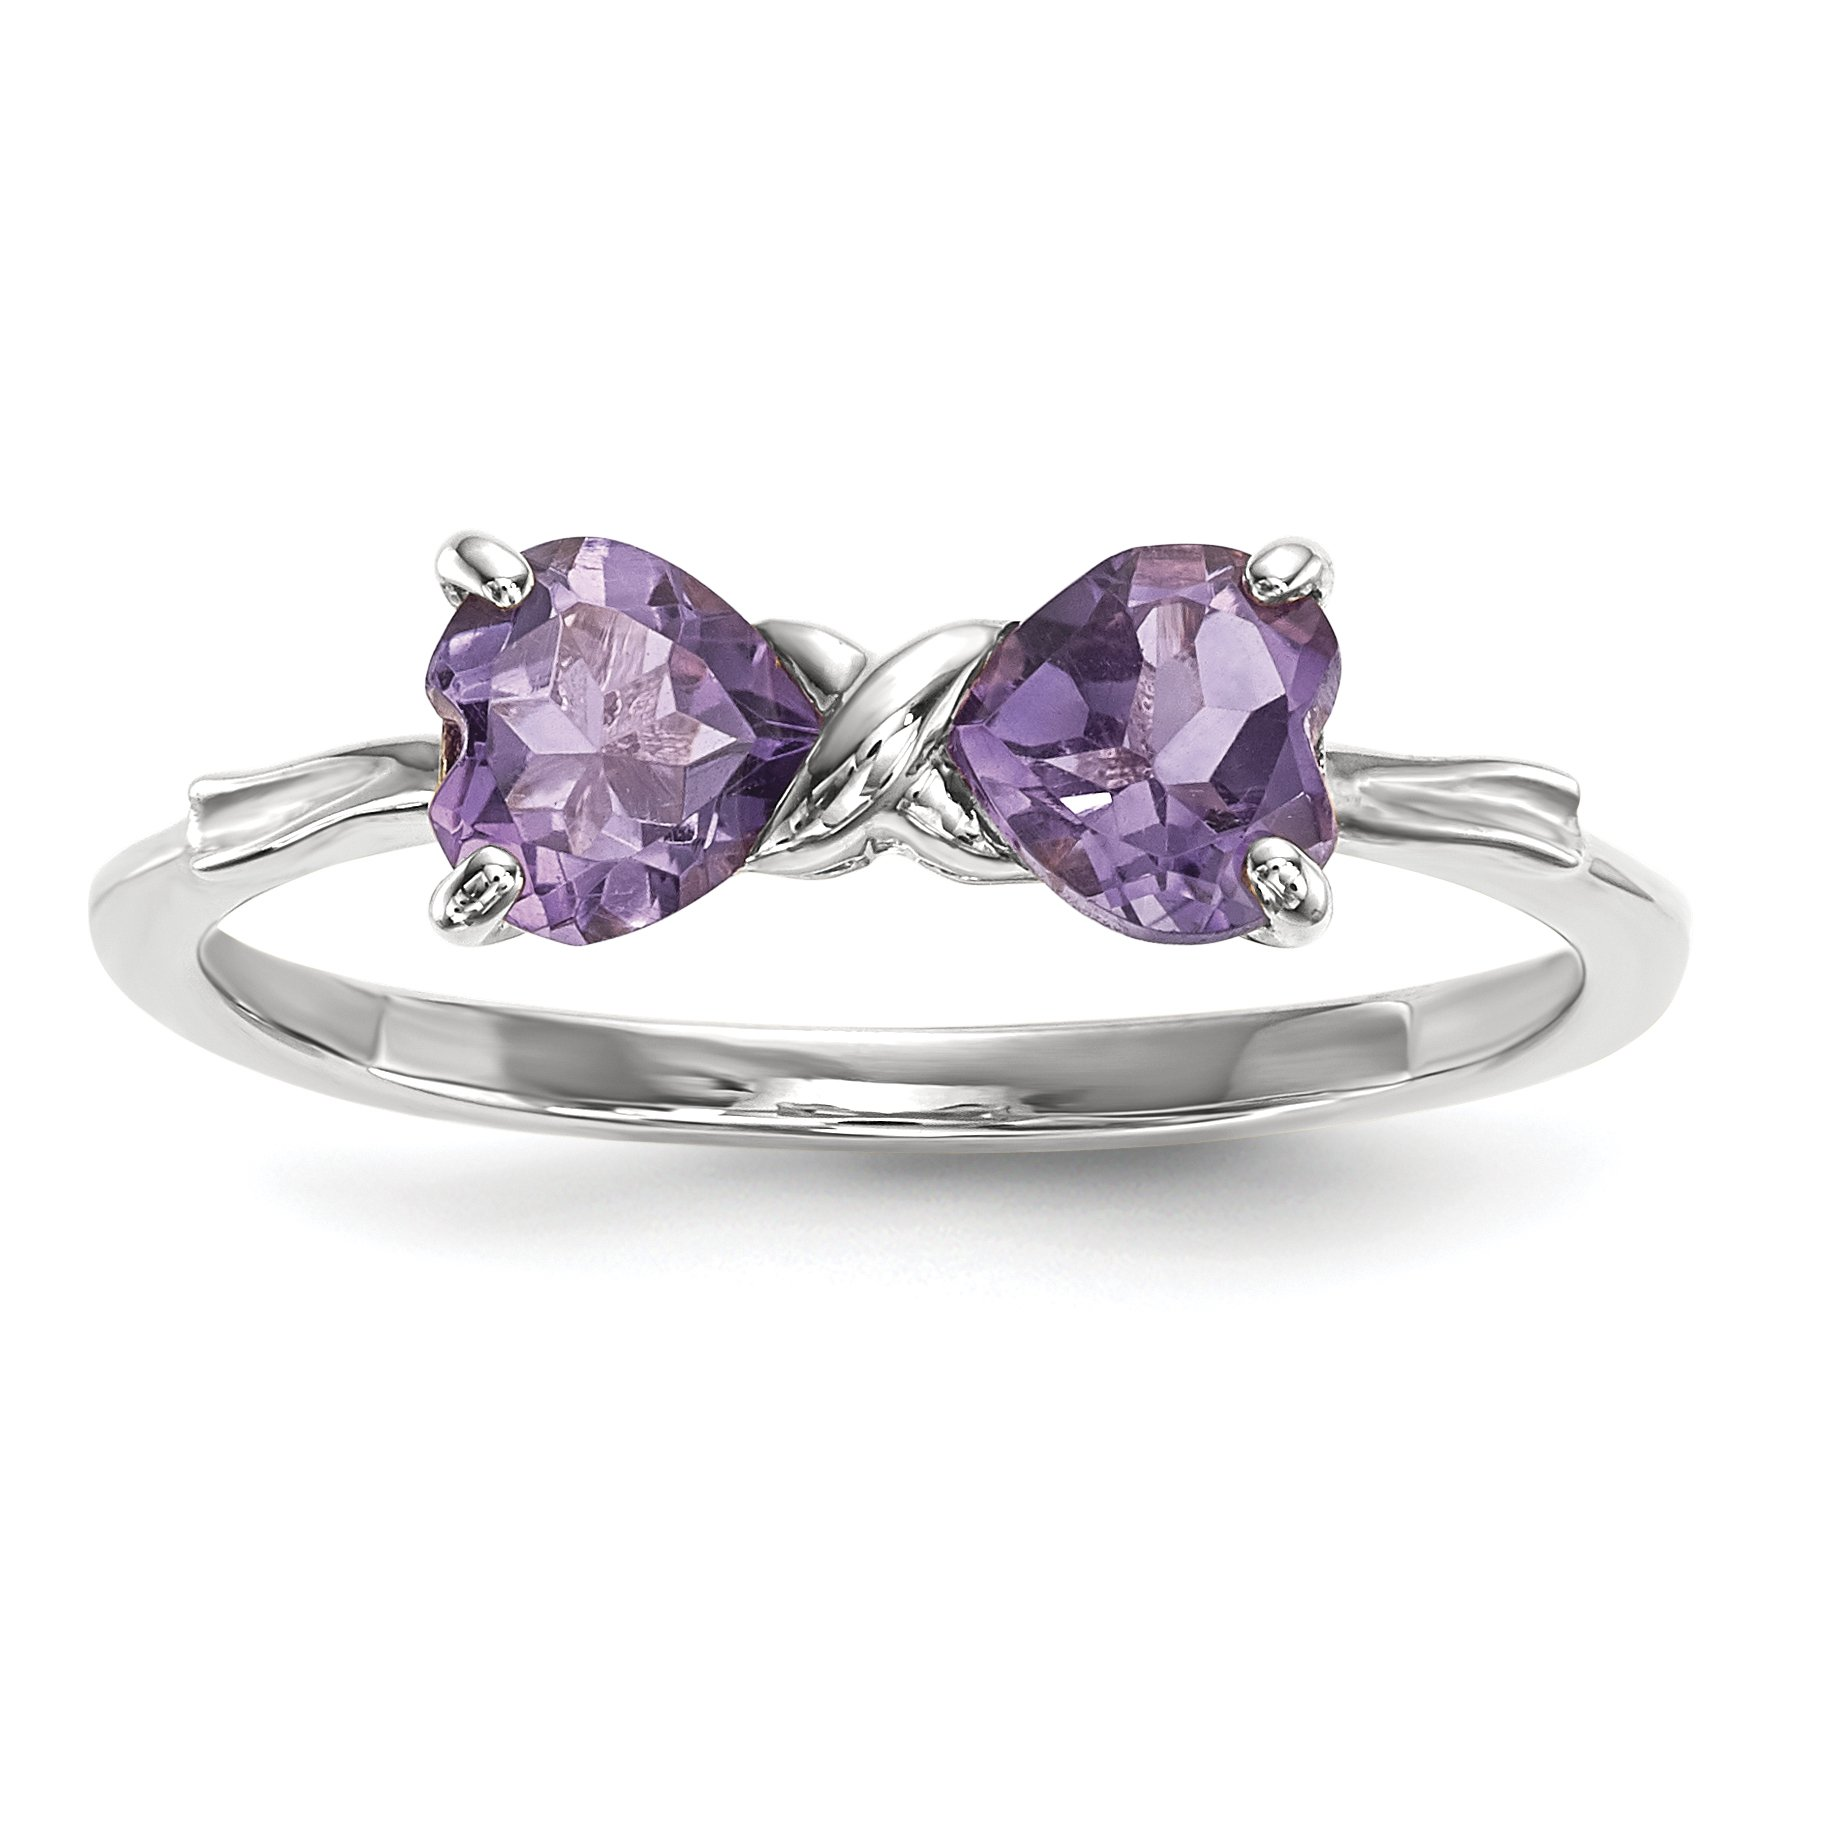 ICE CARATS 14k White Gold Purple Amethyst Bow Band Ring Size 7.00 Birthstone February Set Style Fine Jewelry Gift Set For Women Heart